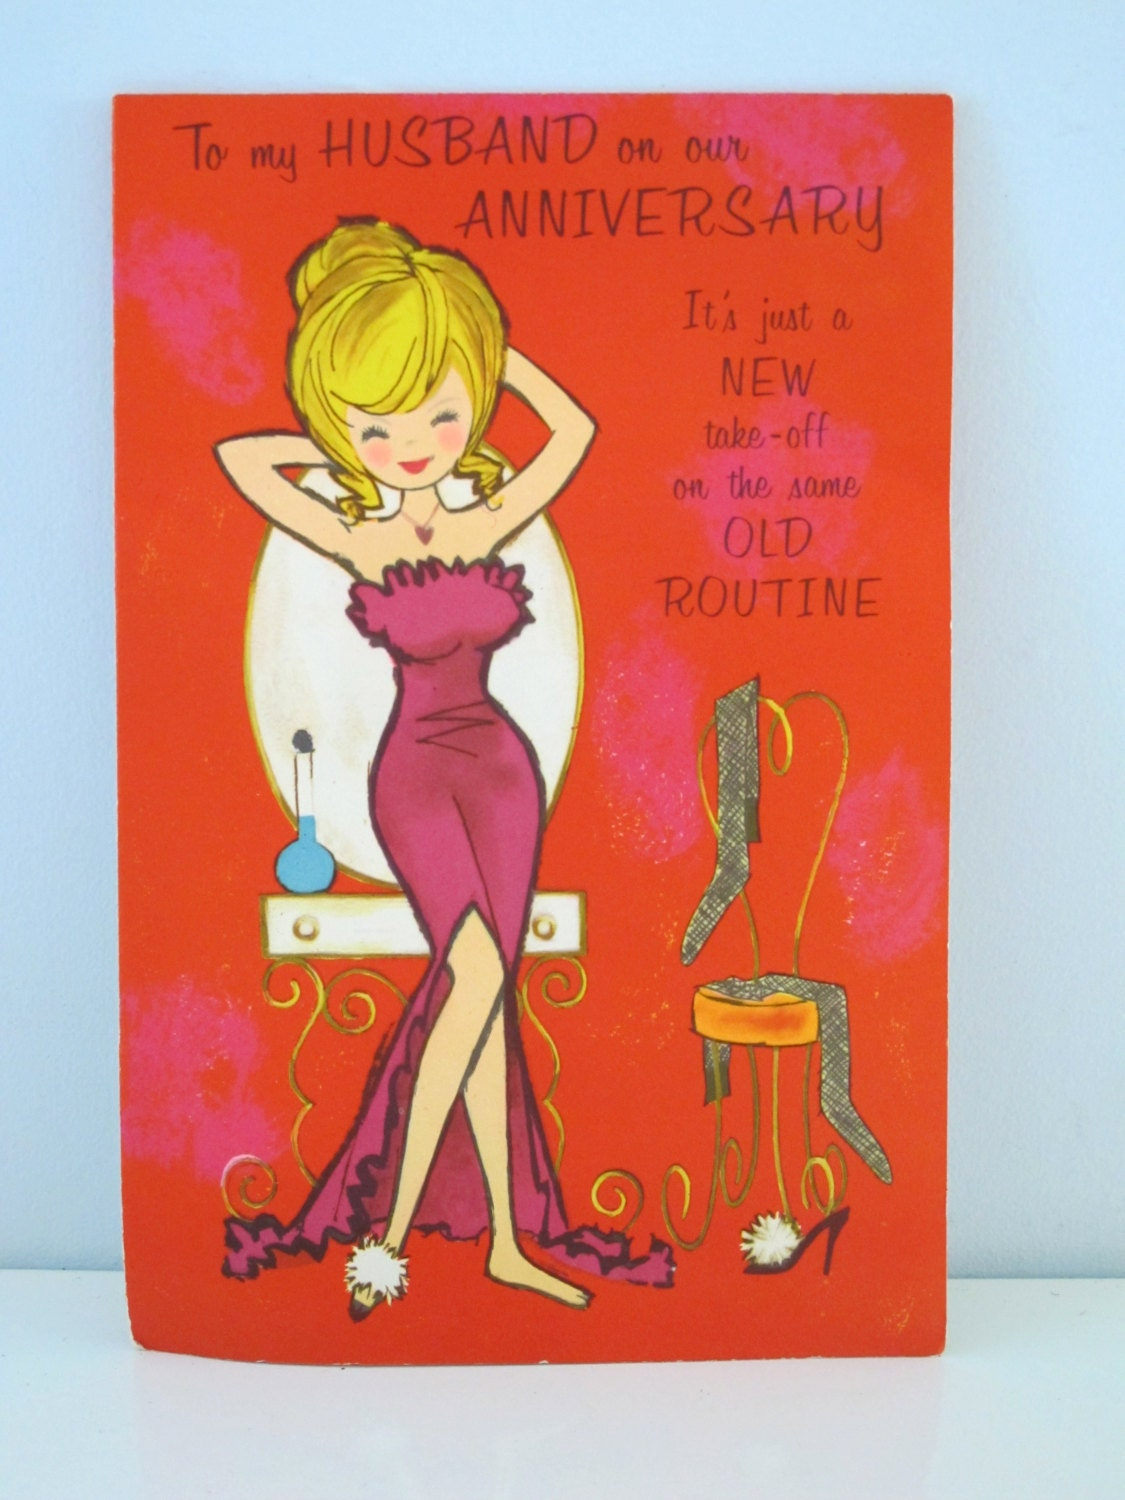 sexy erotic personalized anniversary card